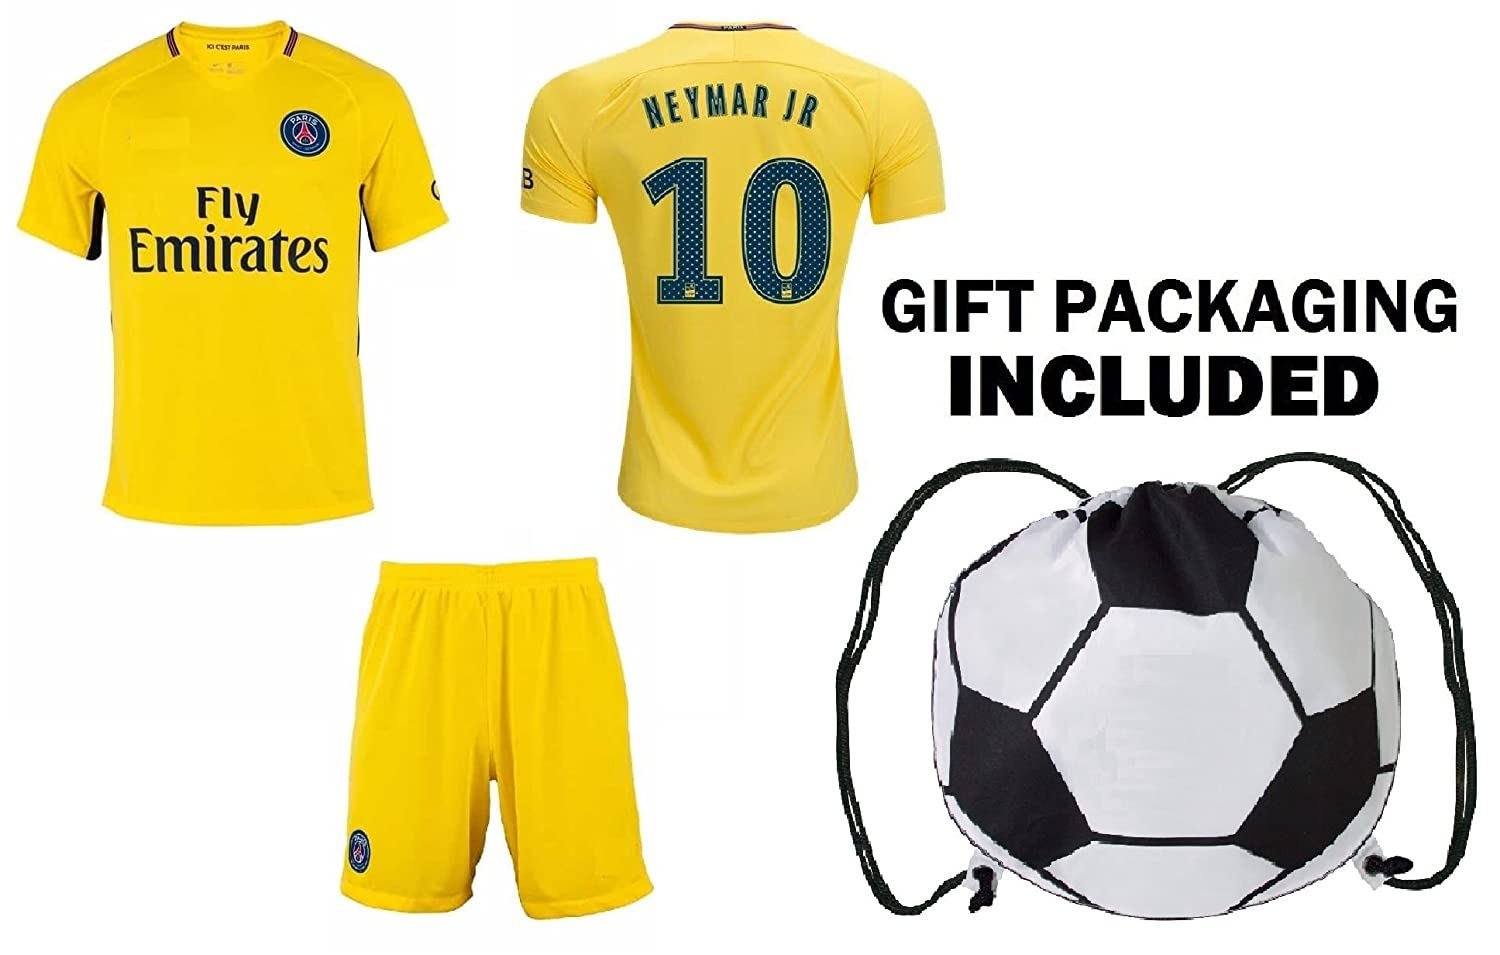 9d1a2906a Amazon.com : Fan Kitbag Neymar Jr #10 PSG Soccer Jersey & Shorts Paris  Saint Germain Youth Kids Home/Away ✓ Premium Gift Set ✓ INCLUDED Soccer  Ball ...